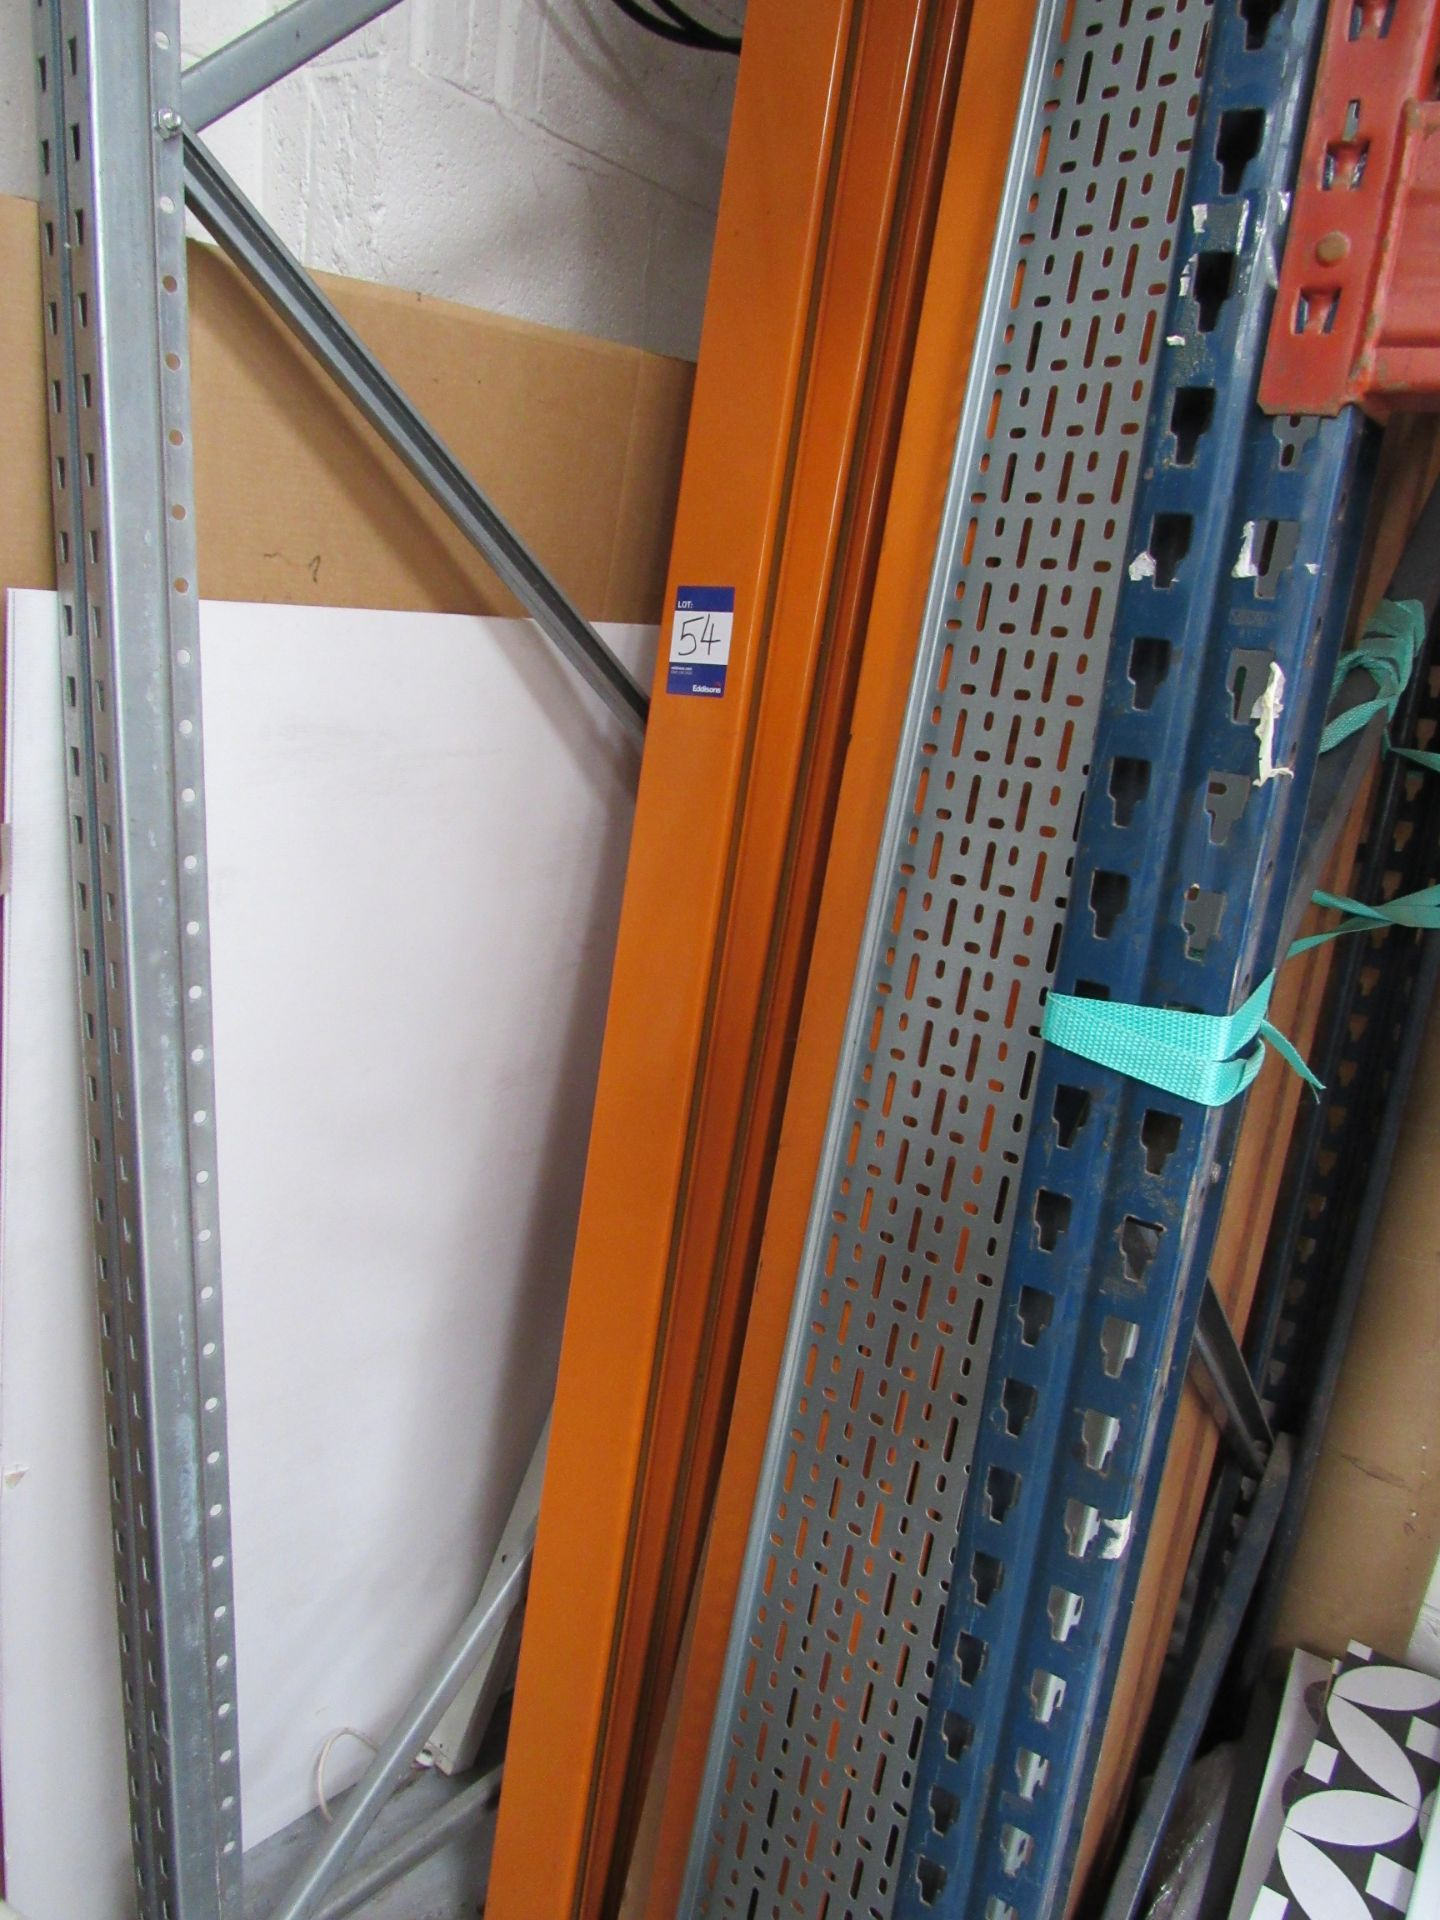 3 Bays Warehouse Racking, 5 End Frames, 12 Cross Beams (assembled) plus 1 End Frame and Approx. 16 - Image 6 of 6